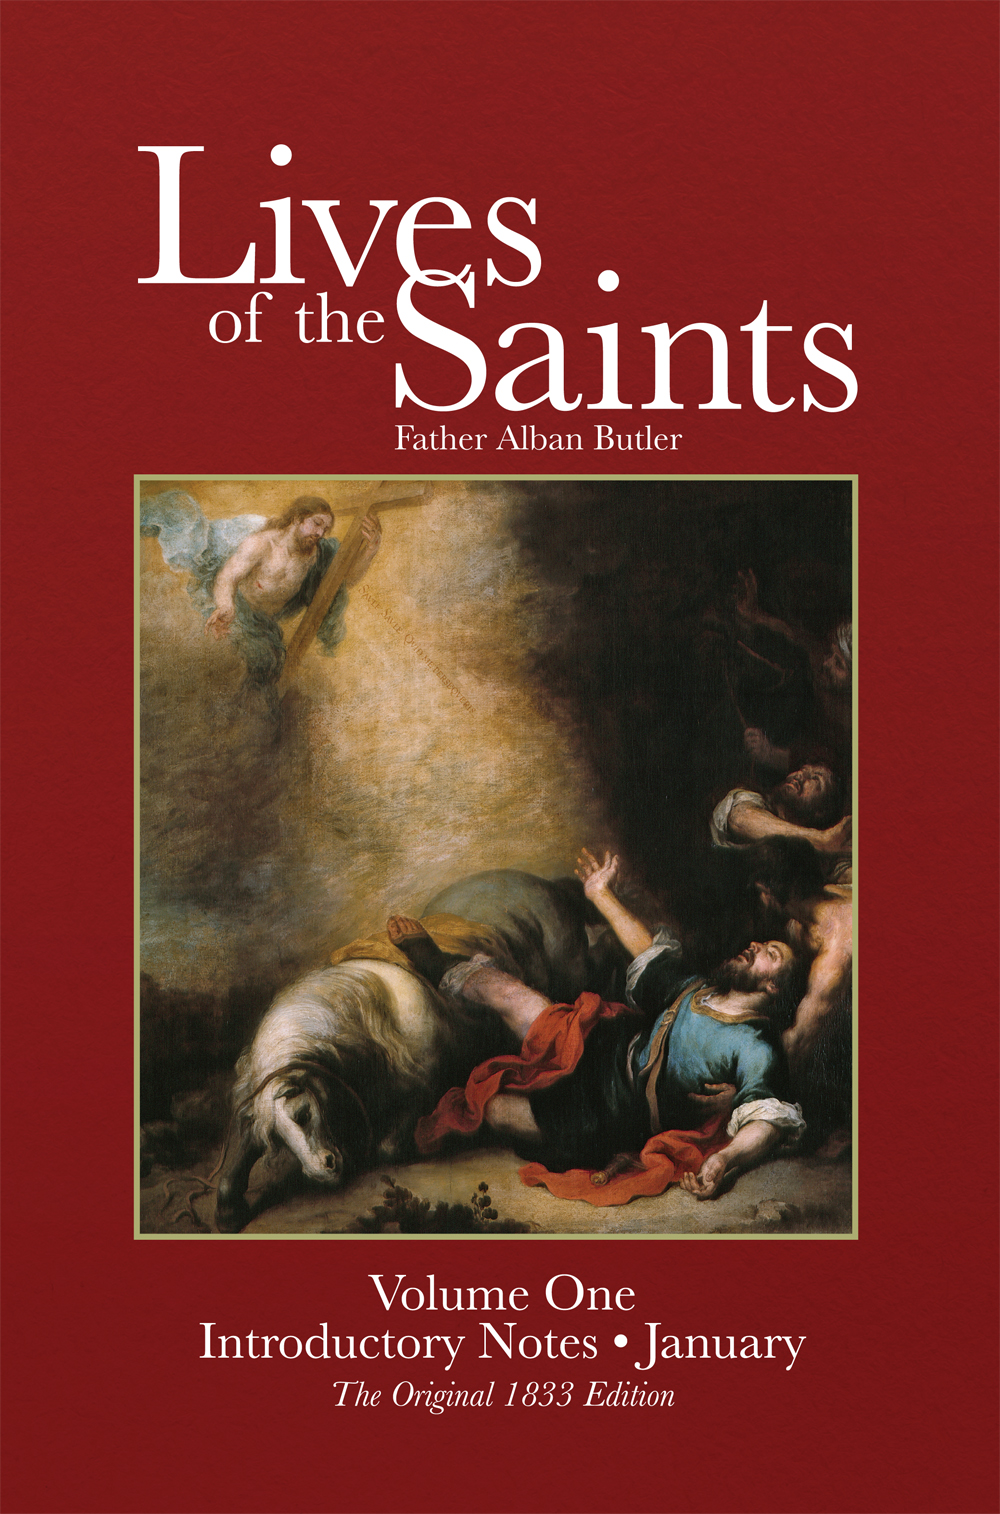 About Butler's Lives of the Saints